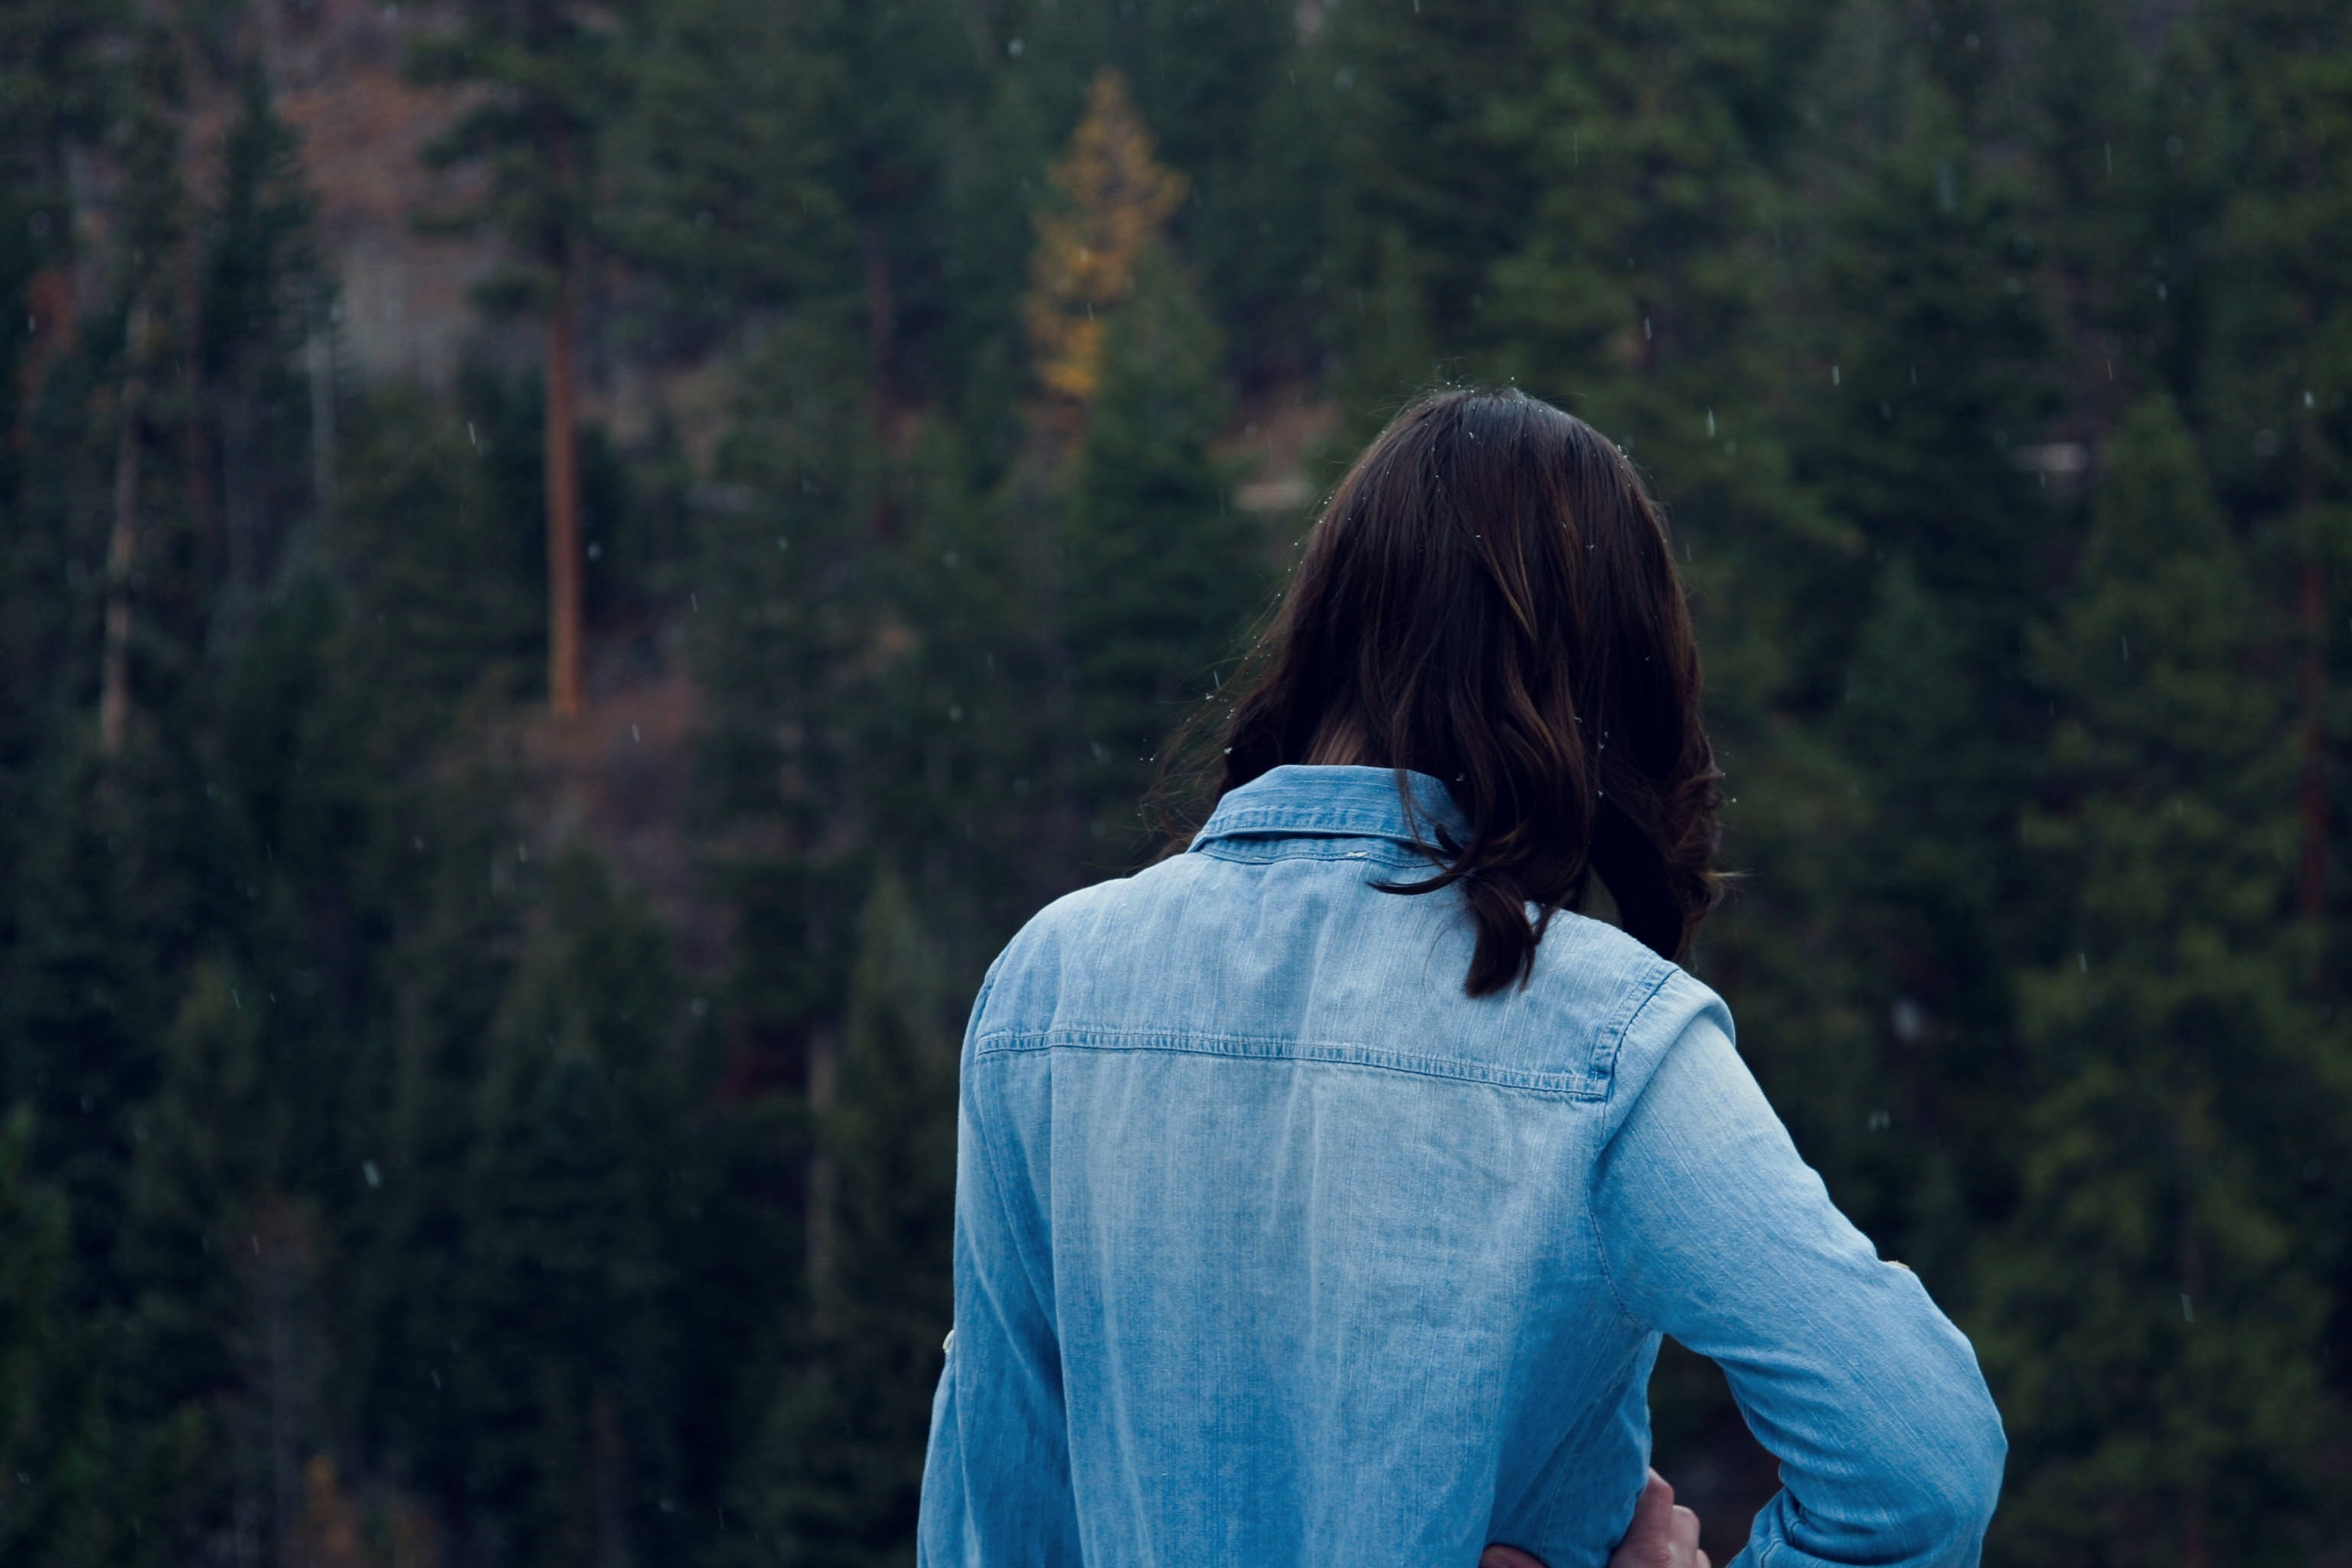 Woman wearing a denim shirt overlooks a lush green landscape